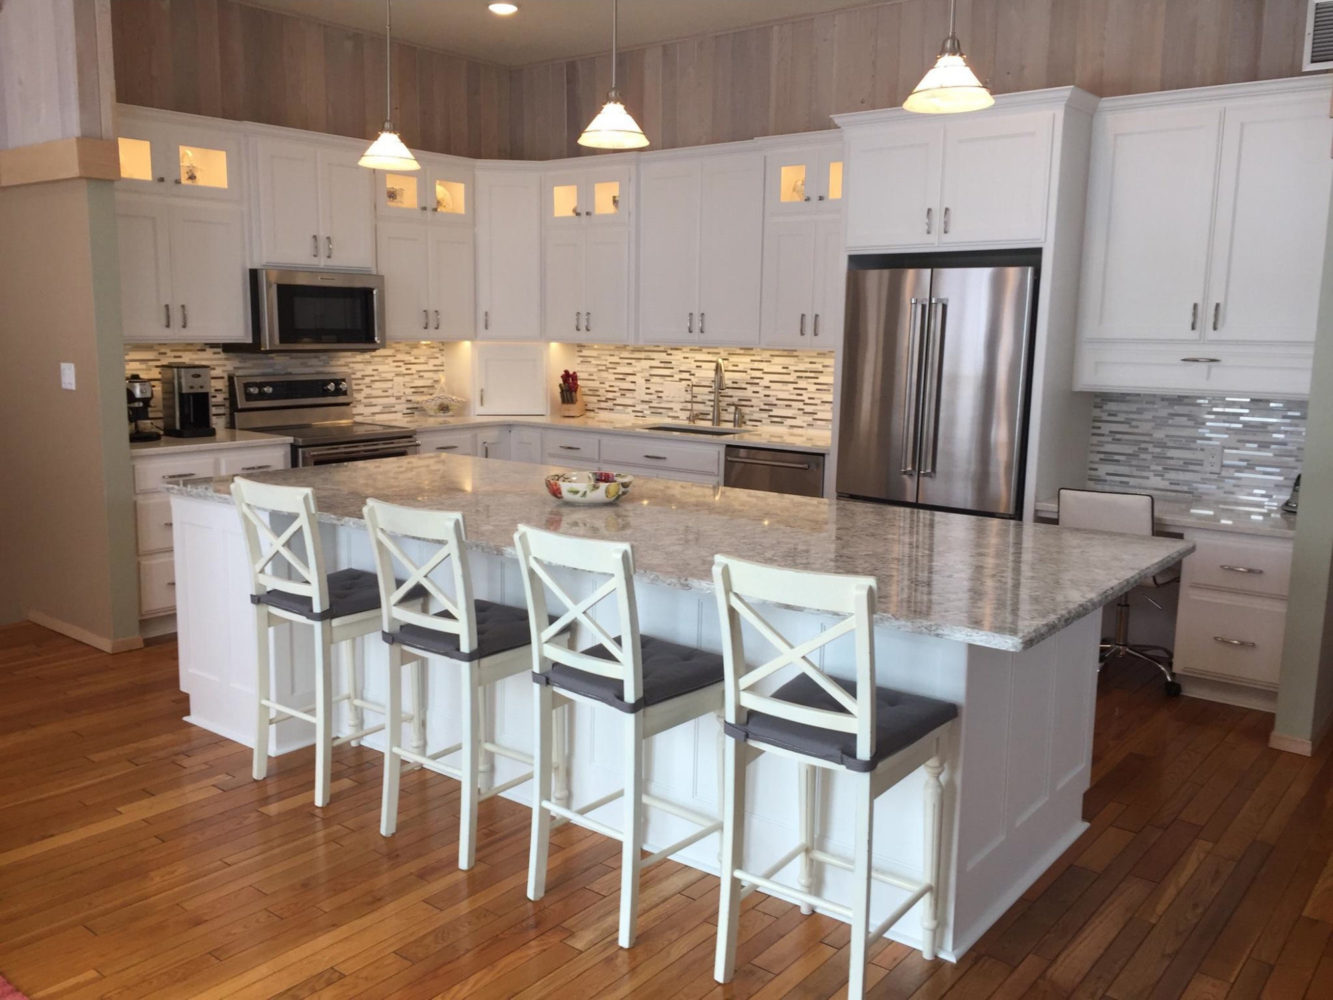 Cabinets in Bright White  Galleries  Projects  The